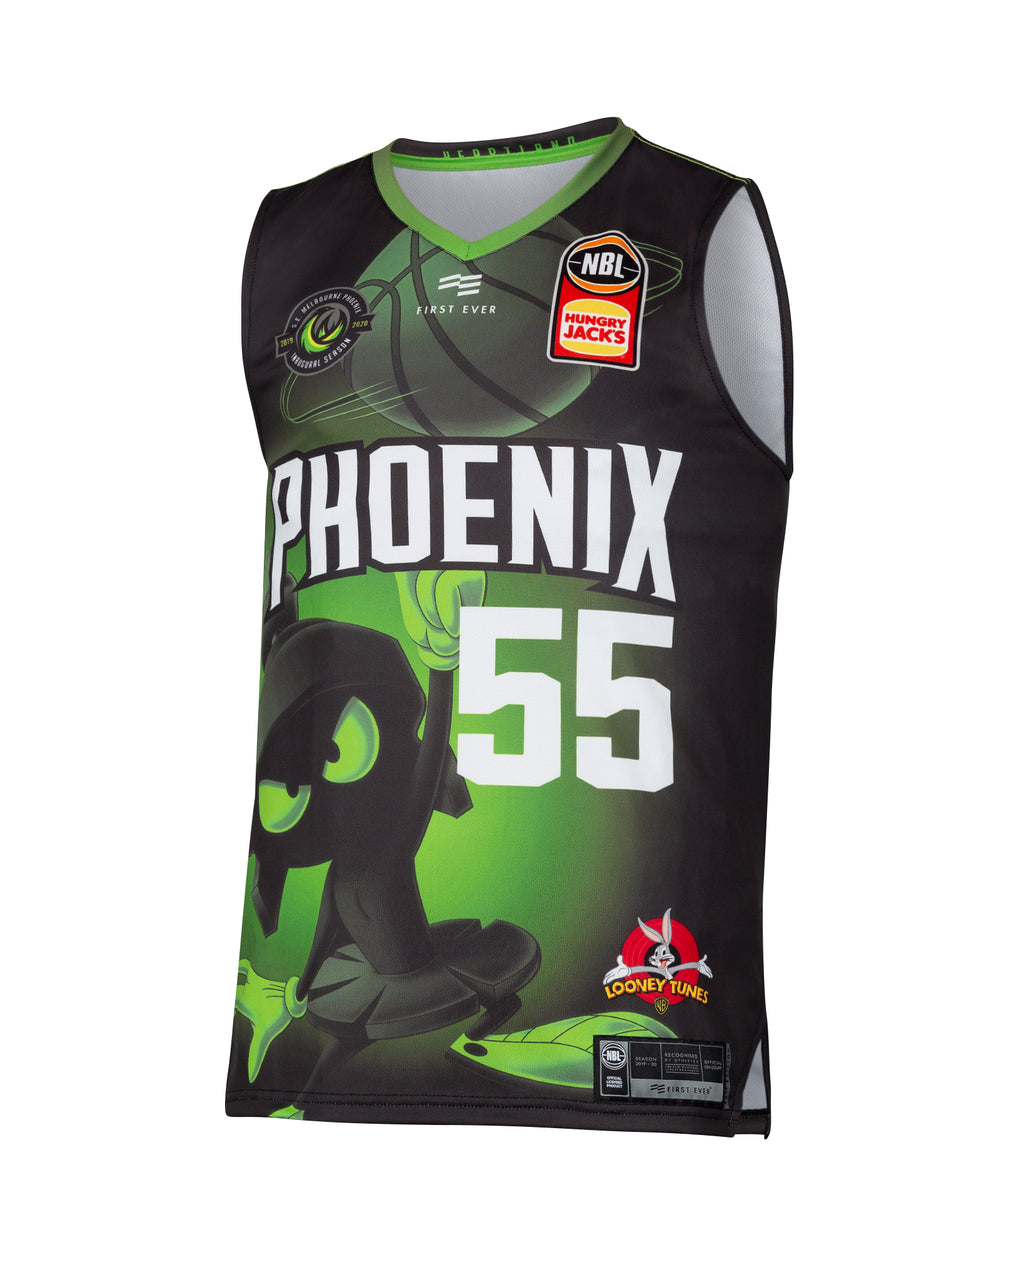 South East Melbourne Phoenix 19/20 Looney Tunes Jersey - Mitch Creek